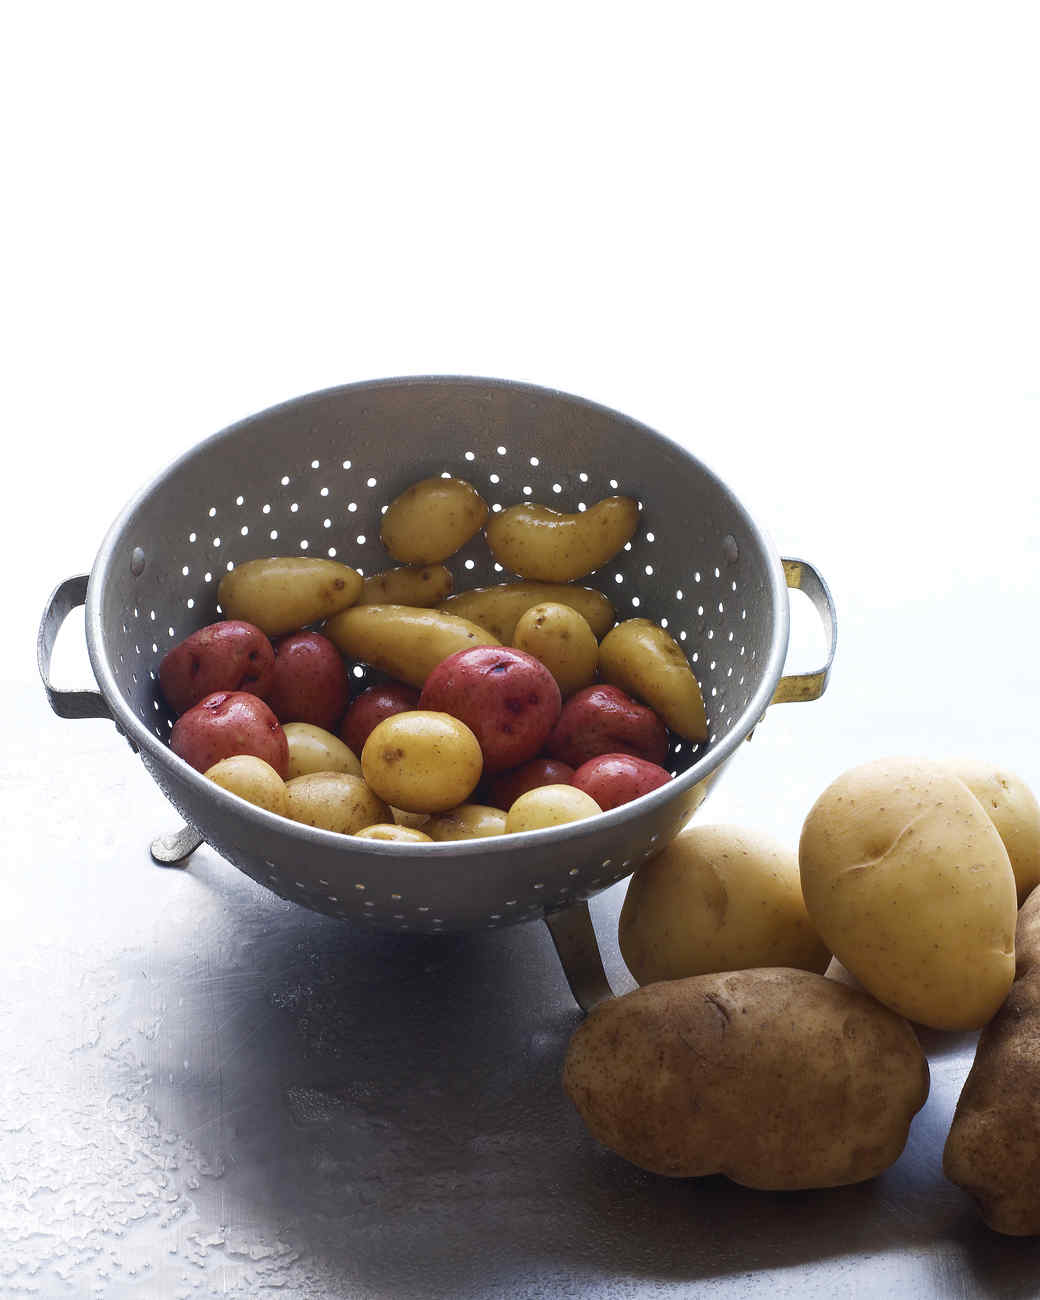 The Humble Potato: Recipes for Any Meal